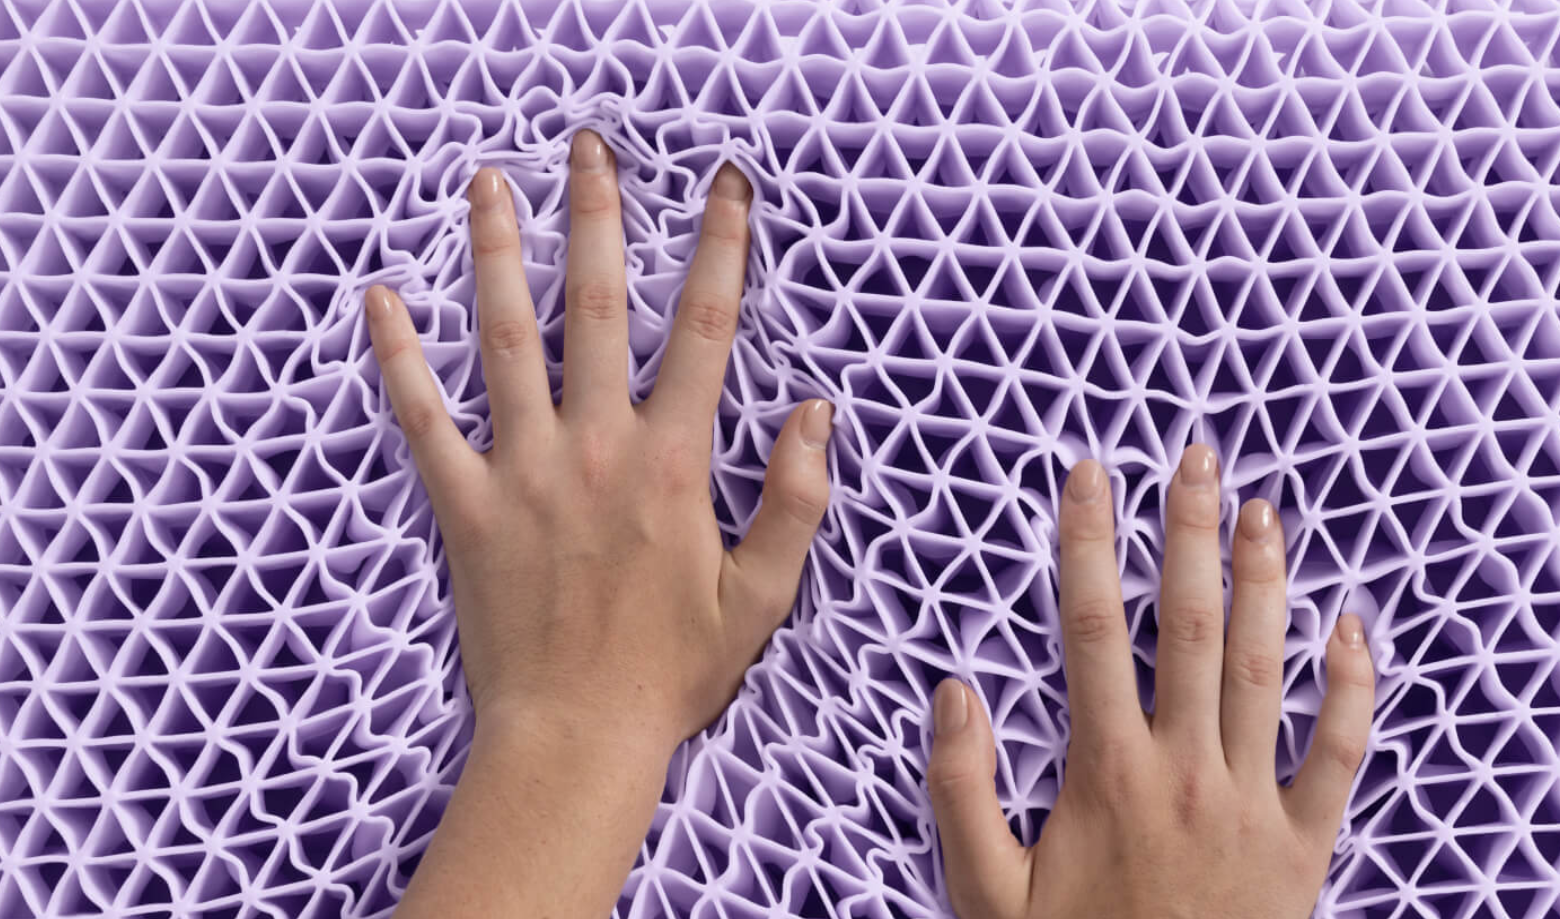 a purple grid comfort and feel